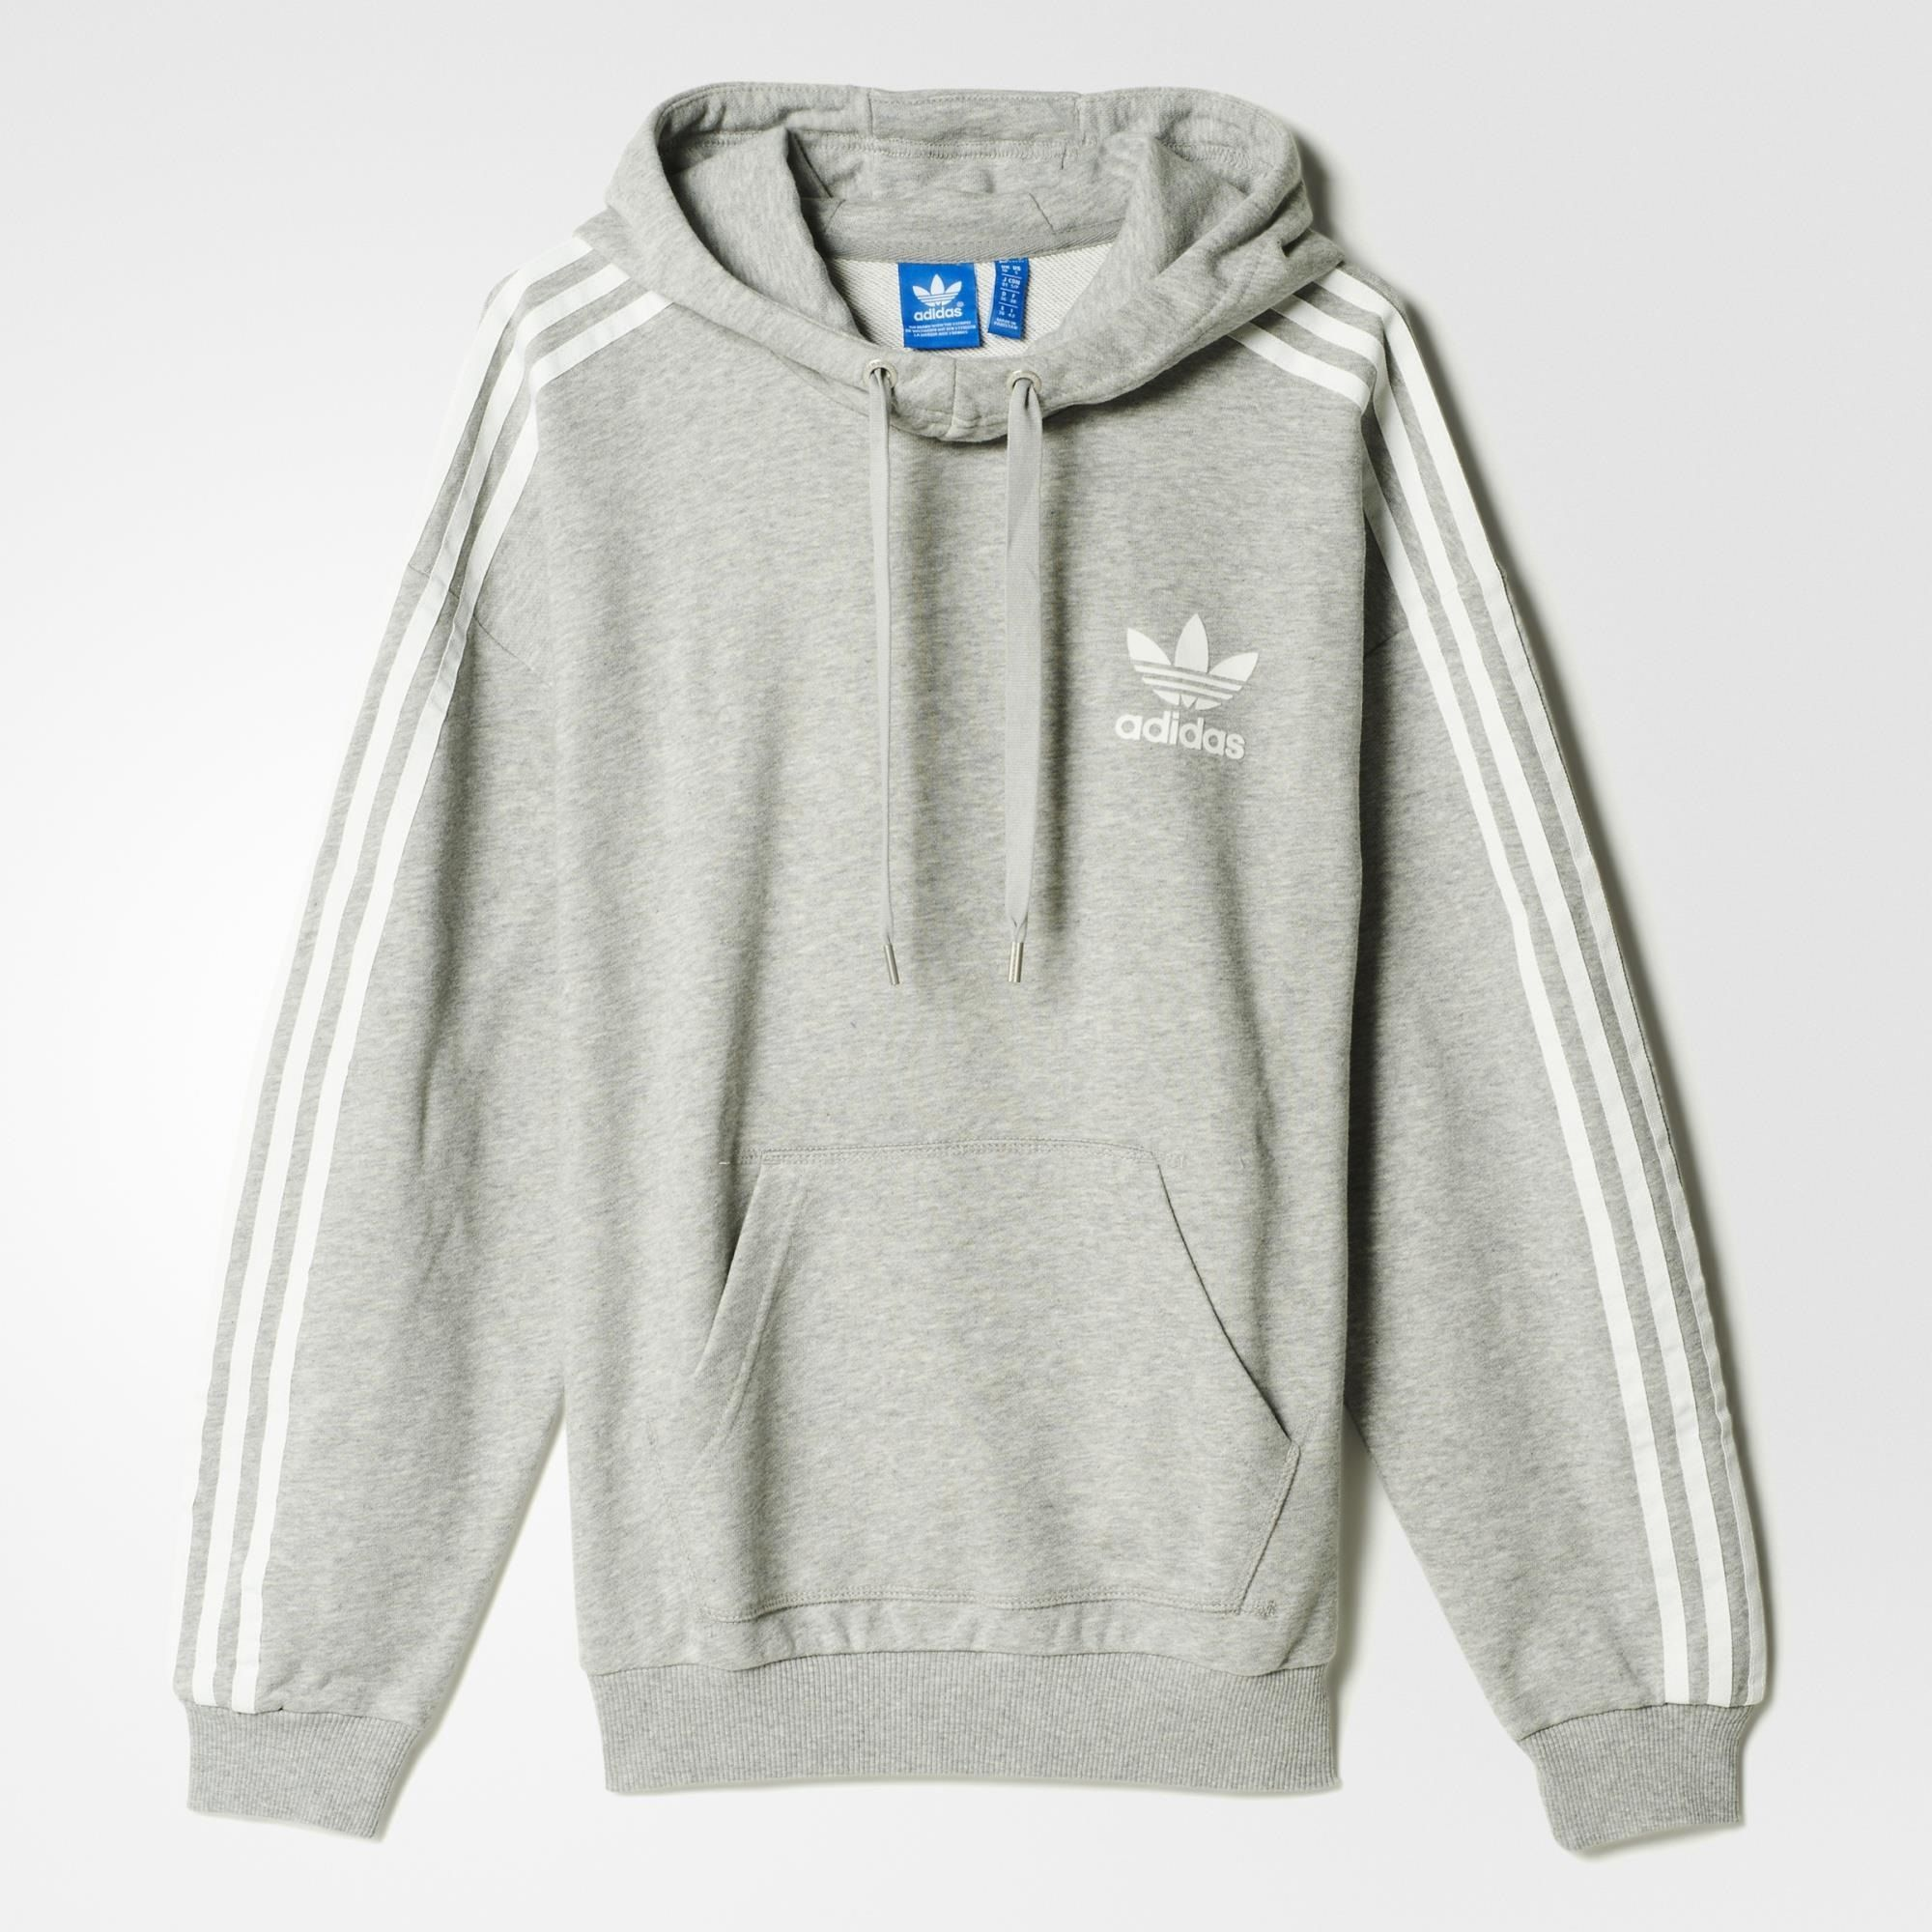 adidas 3-Stripes Hoodie - Grey | adidas US | style | Pinterest ...